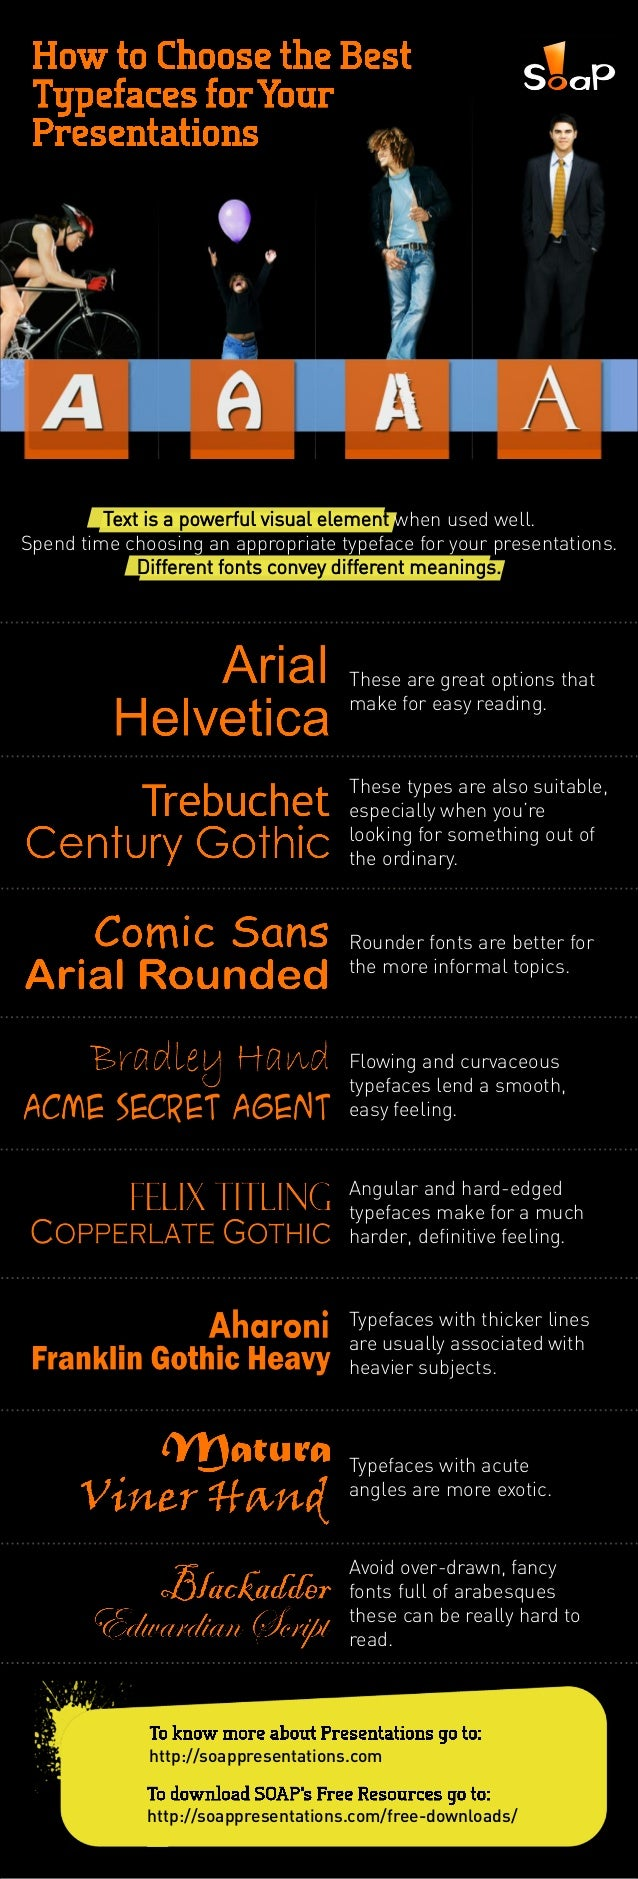 how to choose the best typefaces for your presentations jpg cb  text is a powerful visual element when used well spend time choosing an appropriate typeface